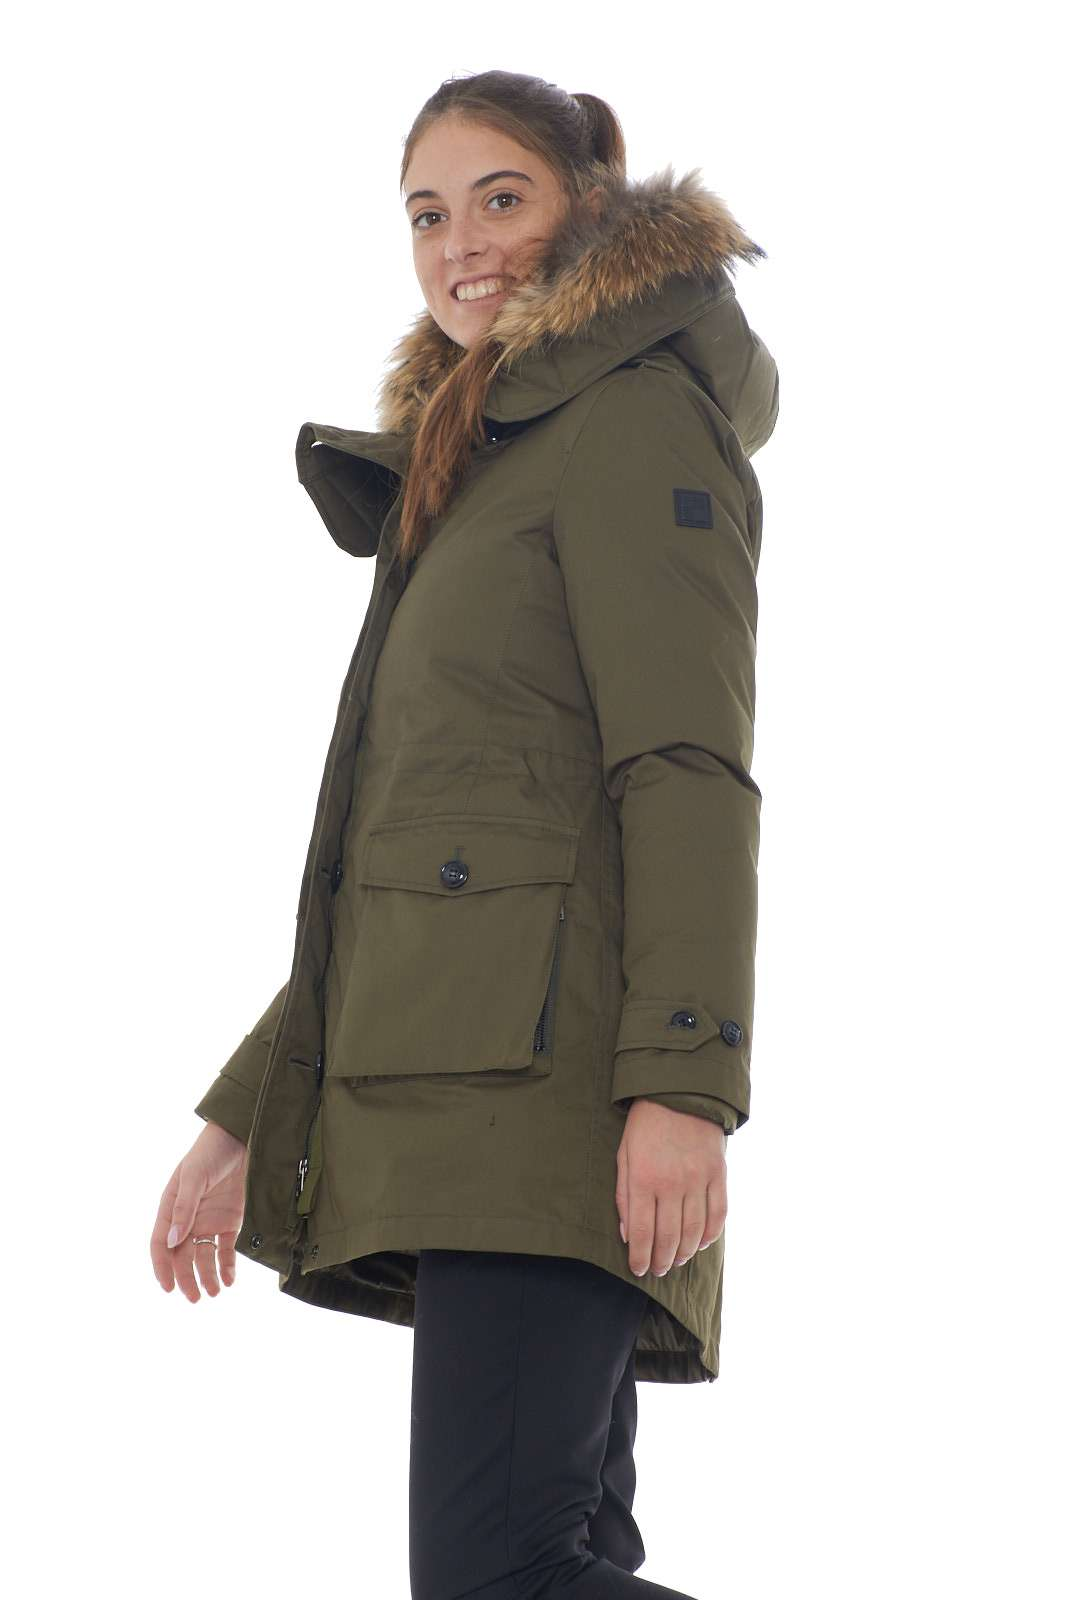 https://www.parmax.com/media/catalog/product/a/i/AI-outlet_parmax-parka-donna-Woolrich-WWCPS2760-B.jpg